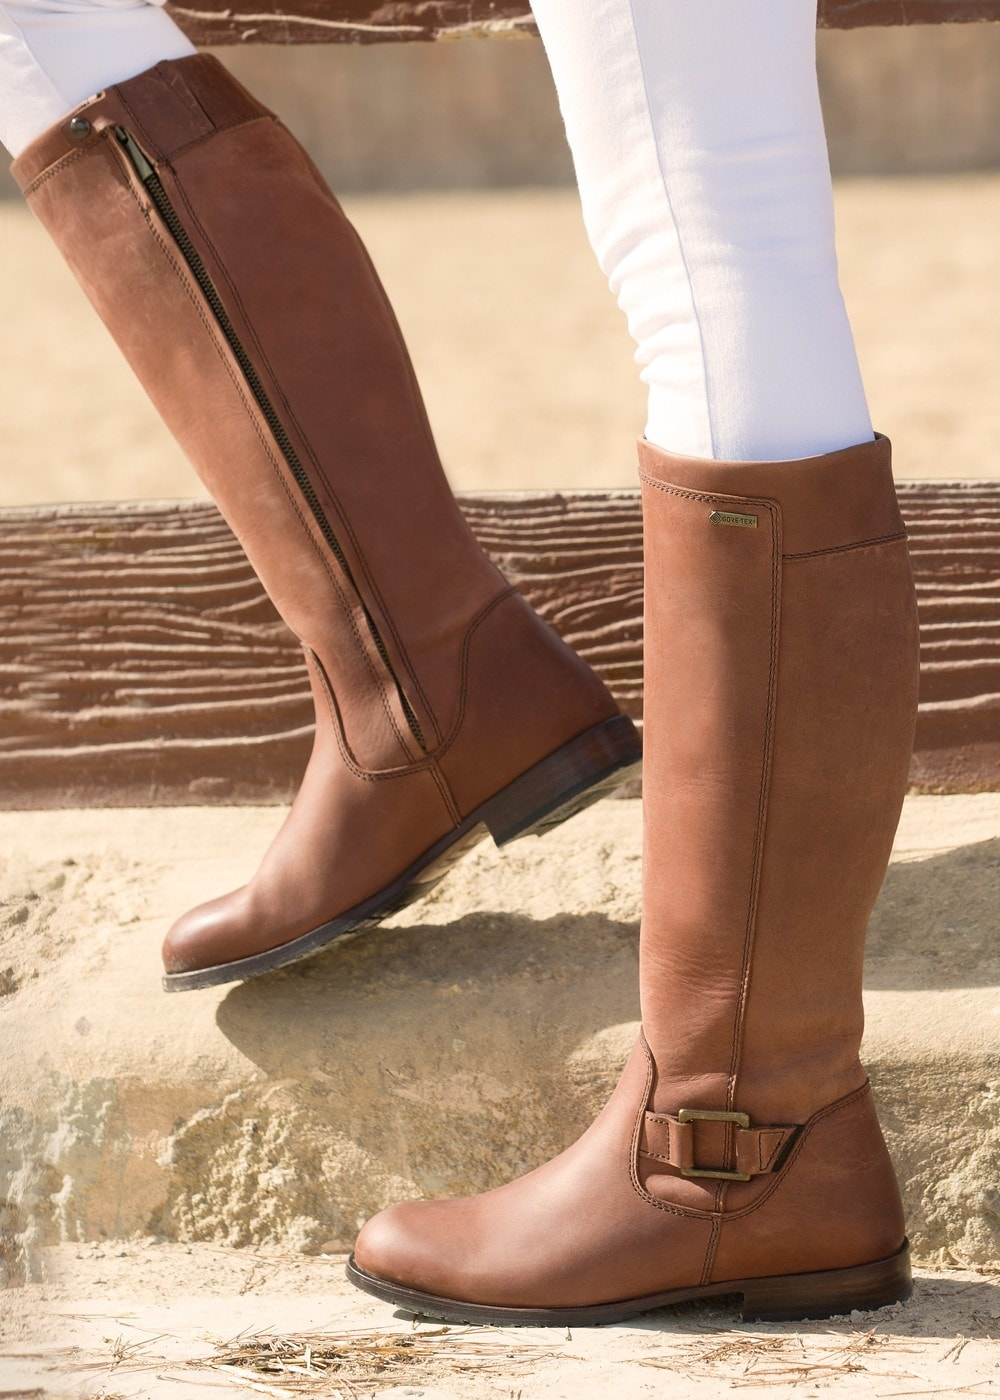 Dubarry Limerick Boots - Ladies from A